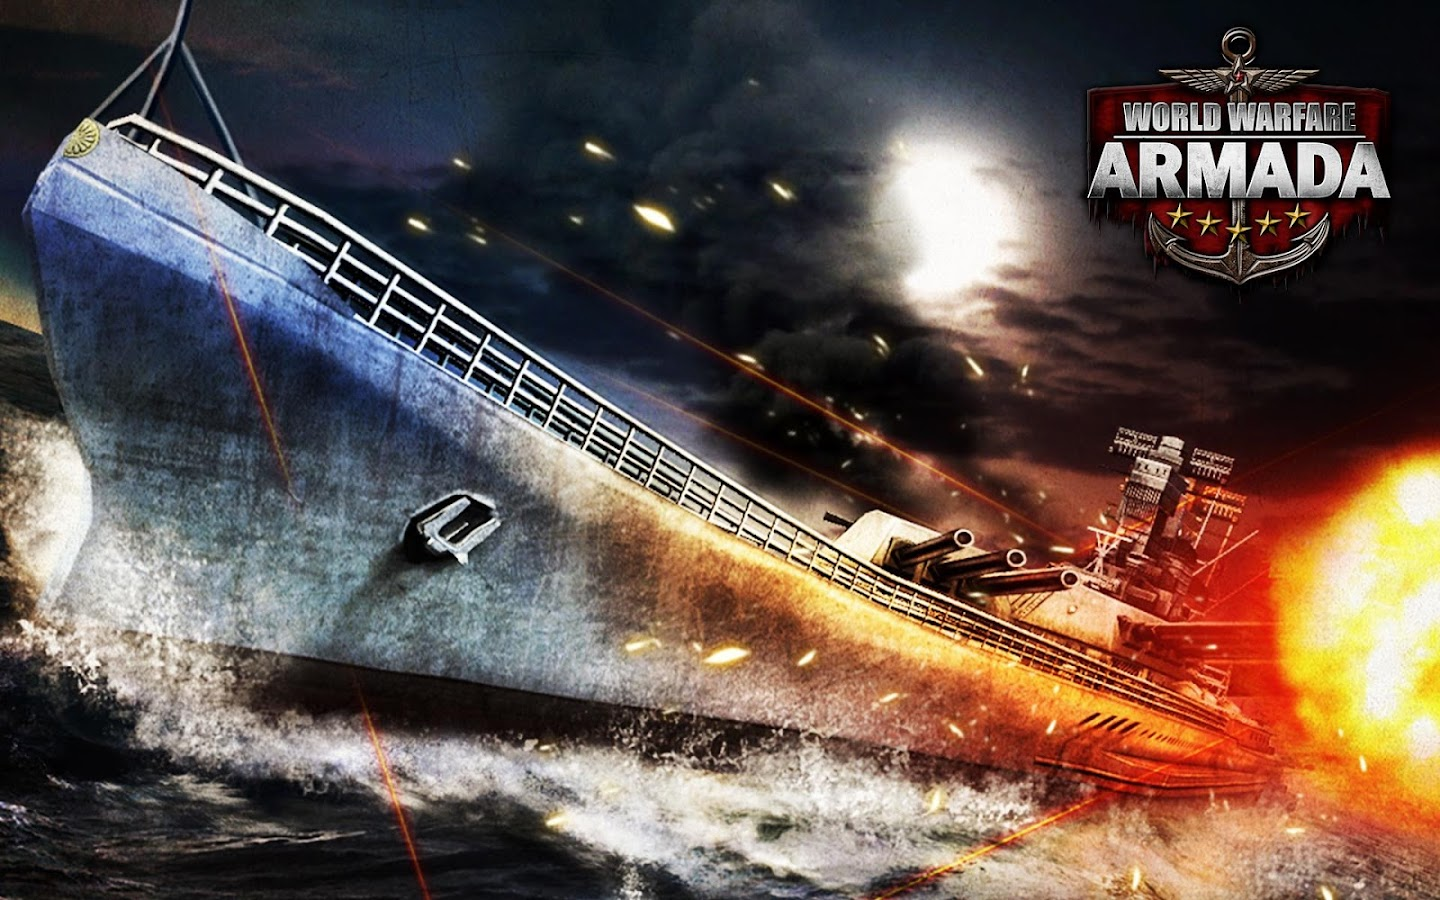 World Warfare: Armada Screenshot 0